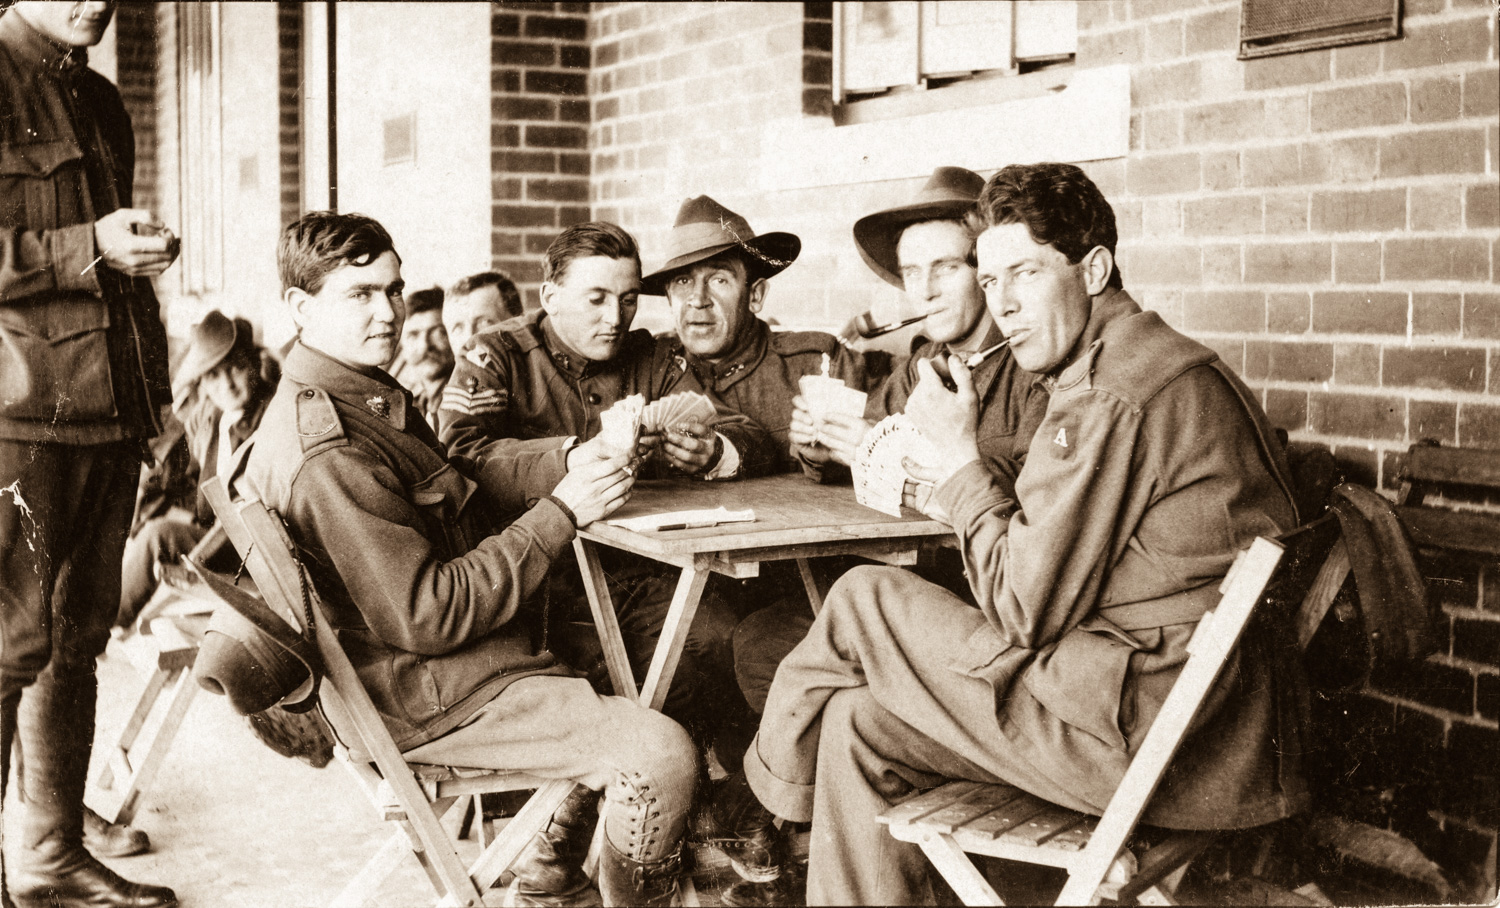 Patients playing cards, 16th Australian General Hospital, Mont Park. Alice Broadhurst Collection. Yarra Plenty Regional Library